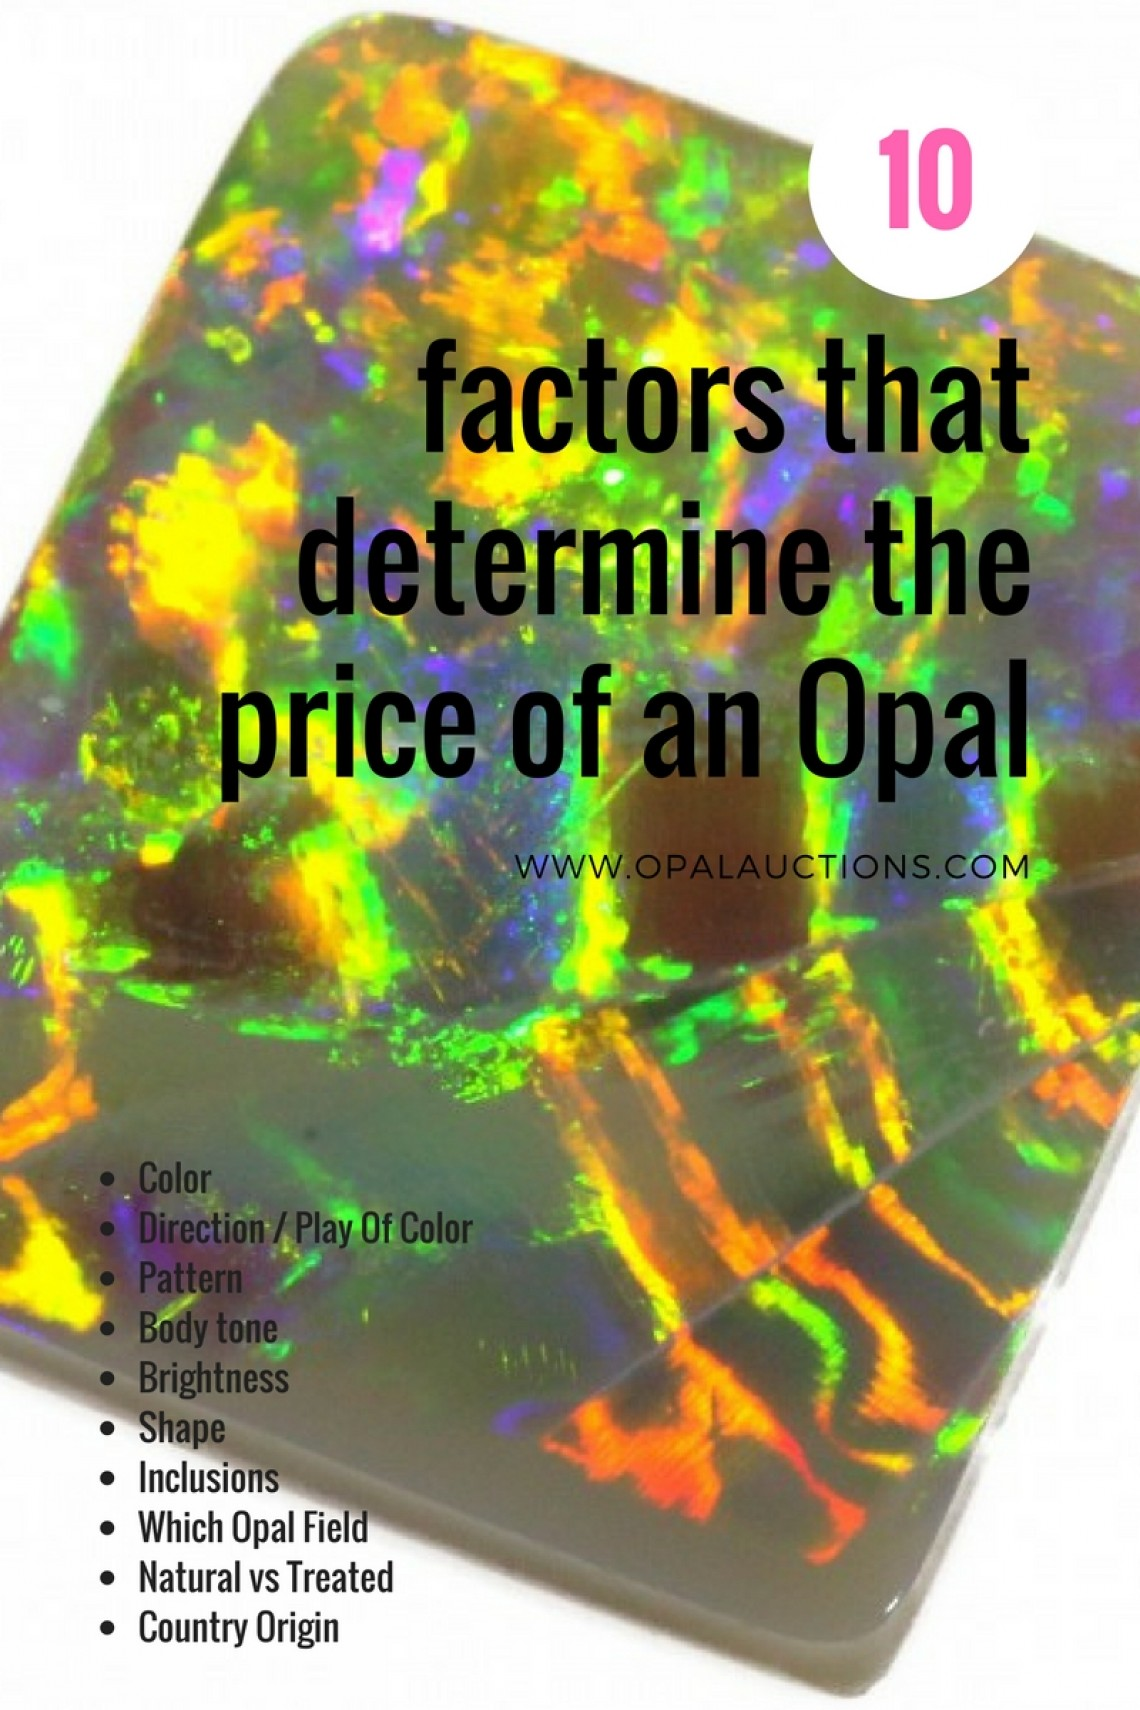 How To Value Opal - The 10 Factors